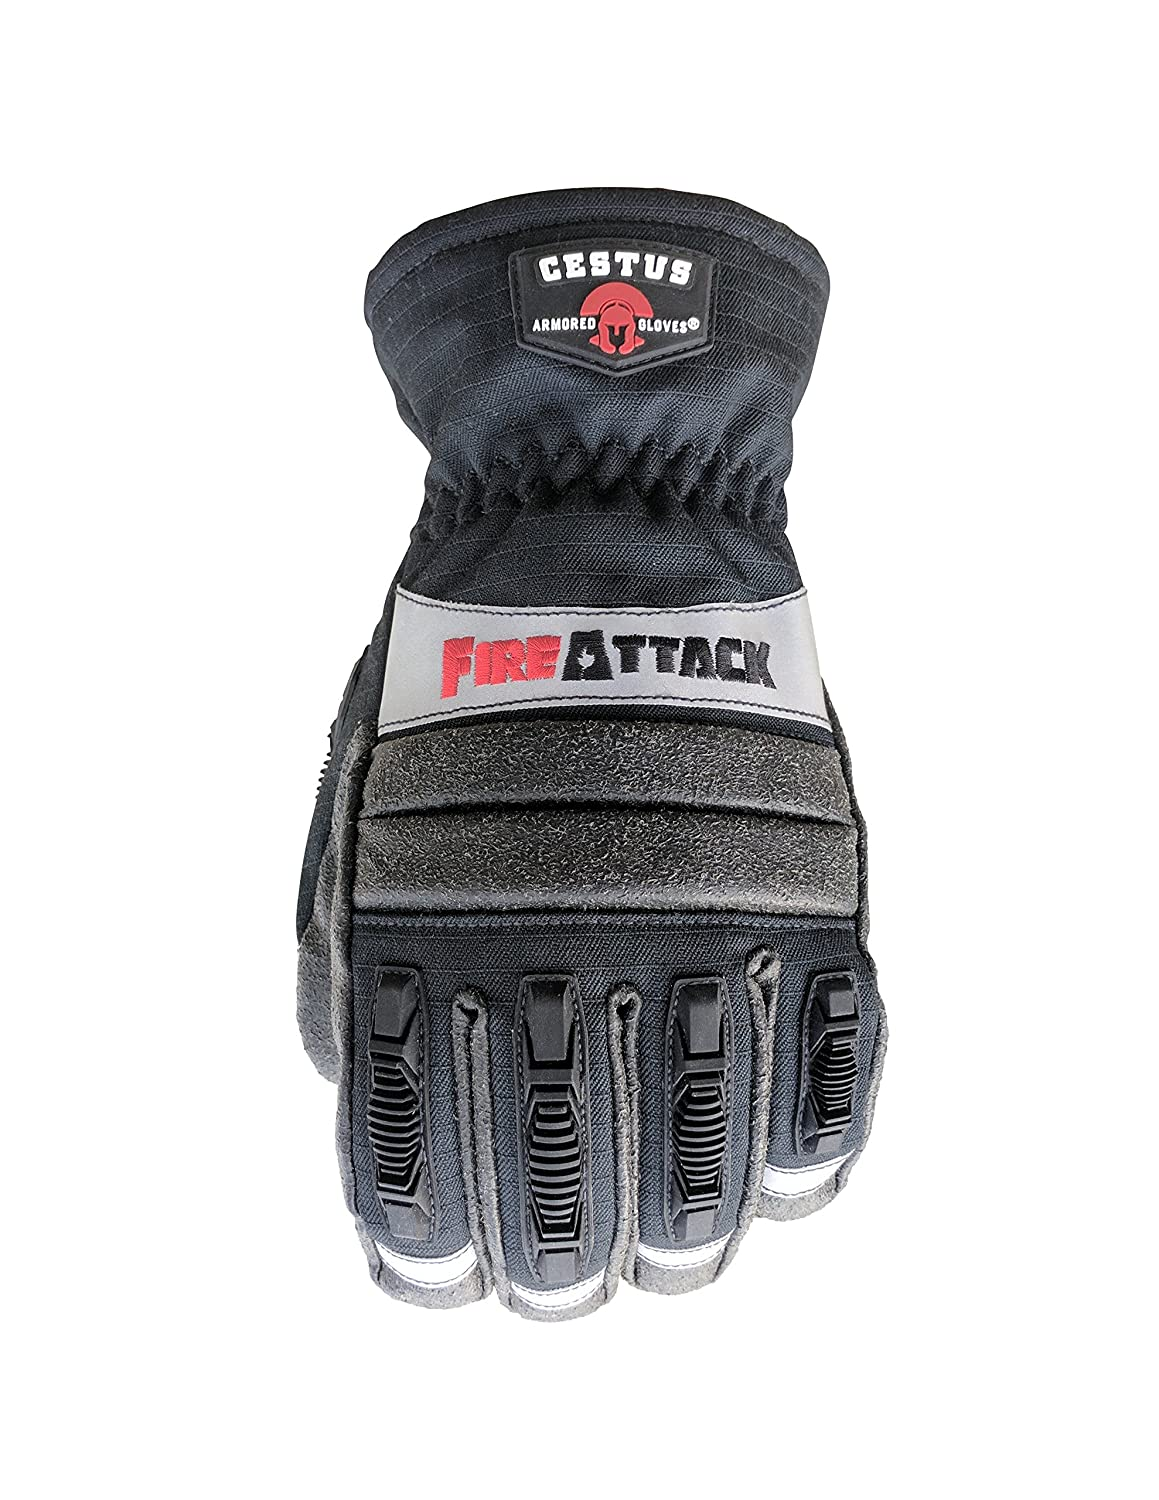 FireAttack Glove (Large) Cestus